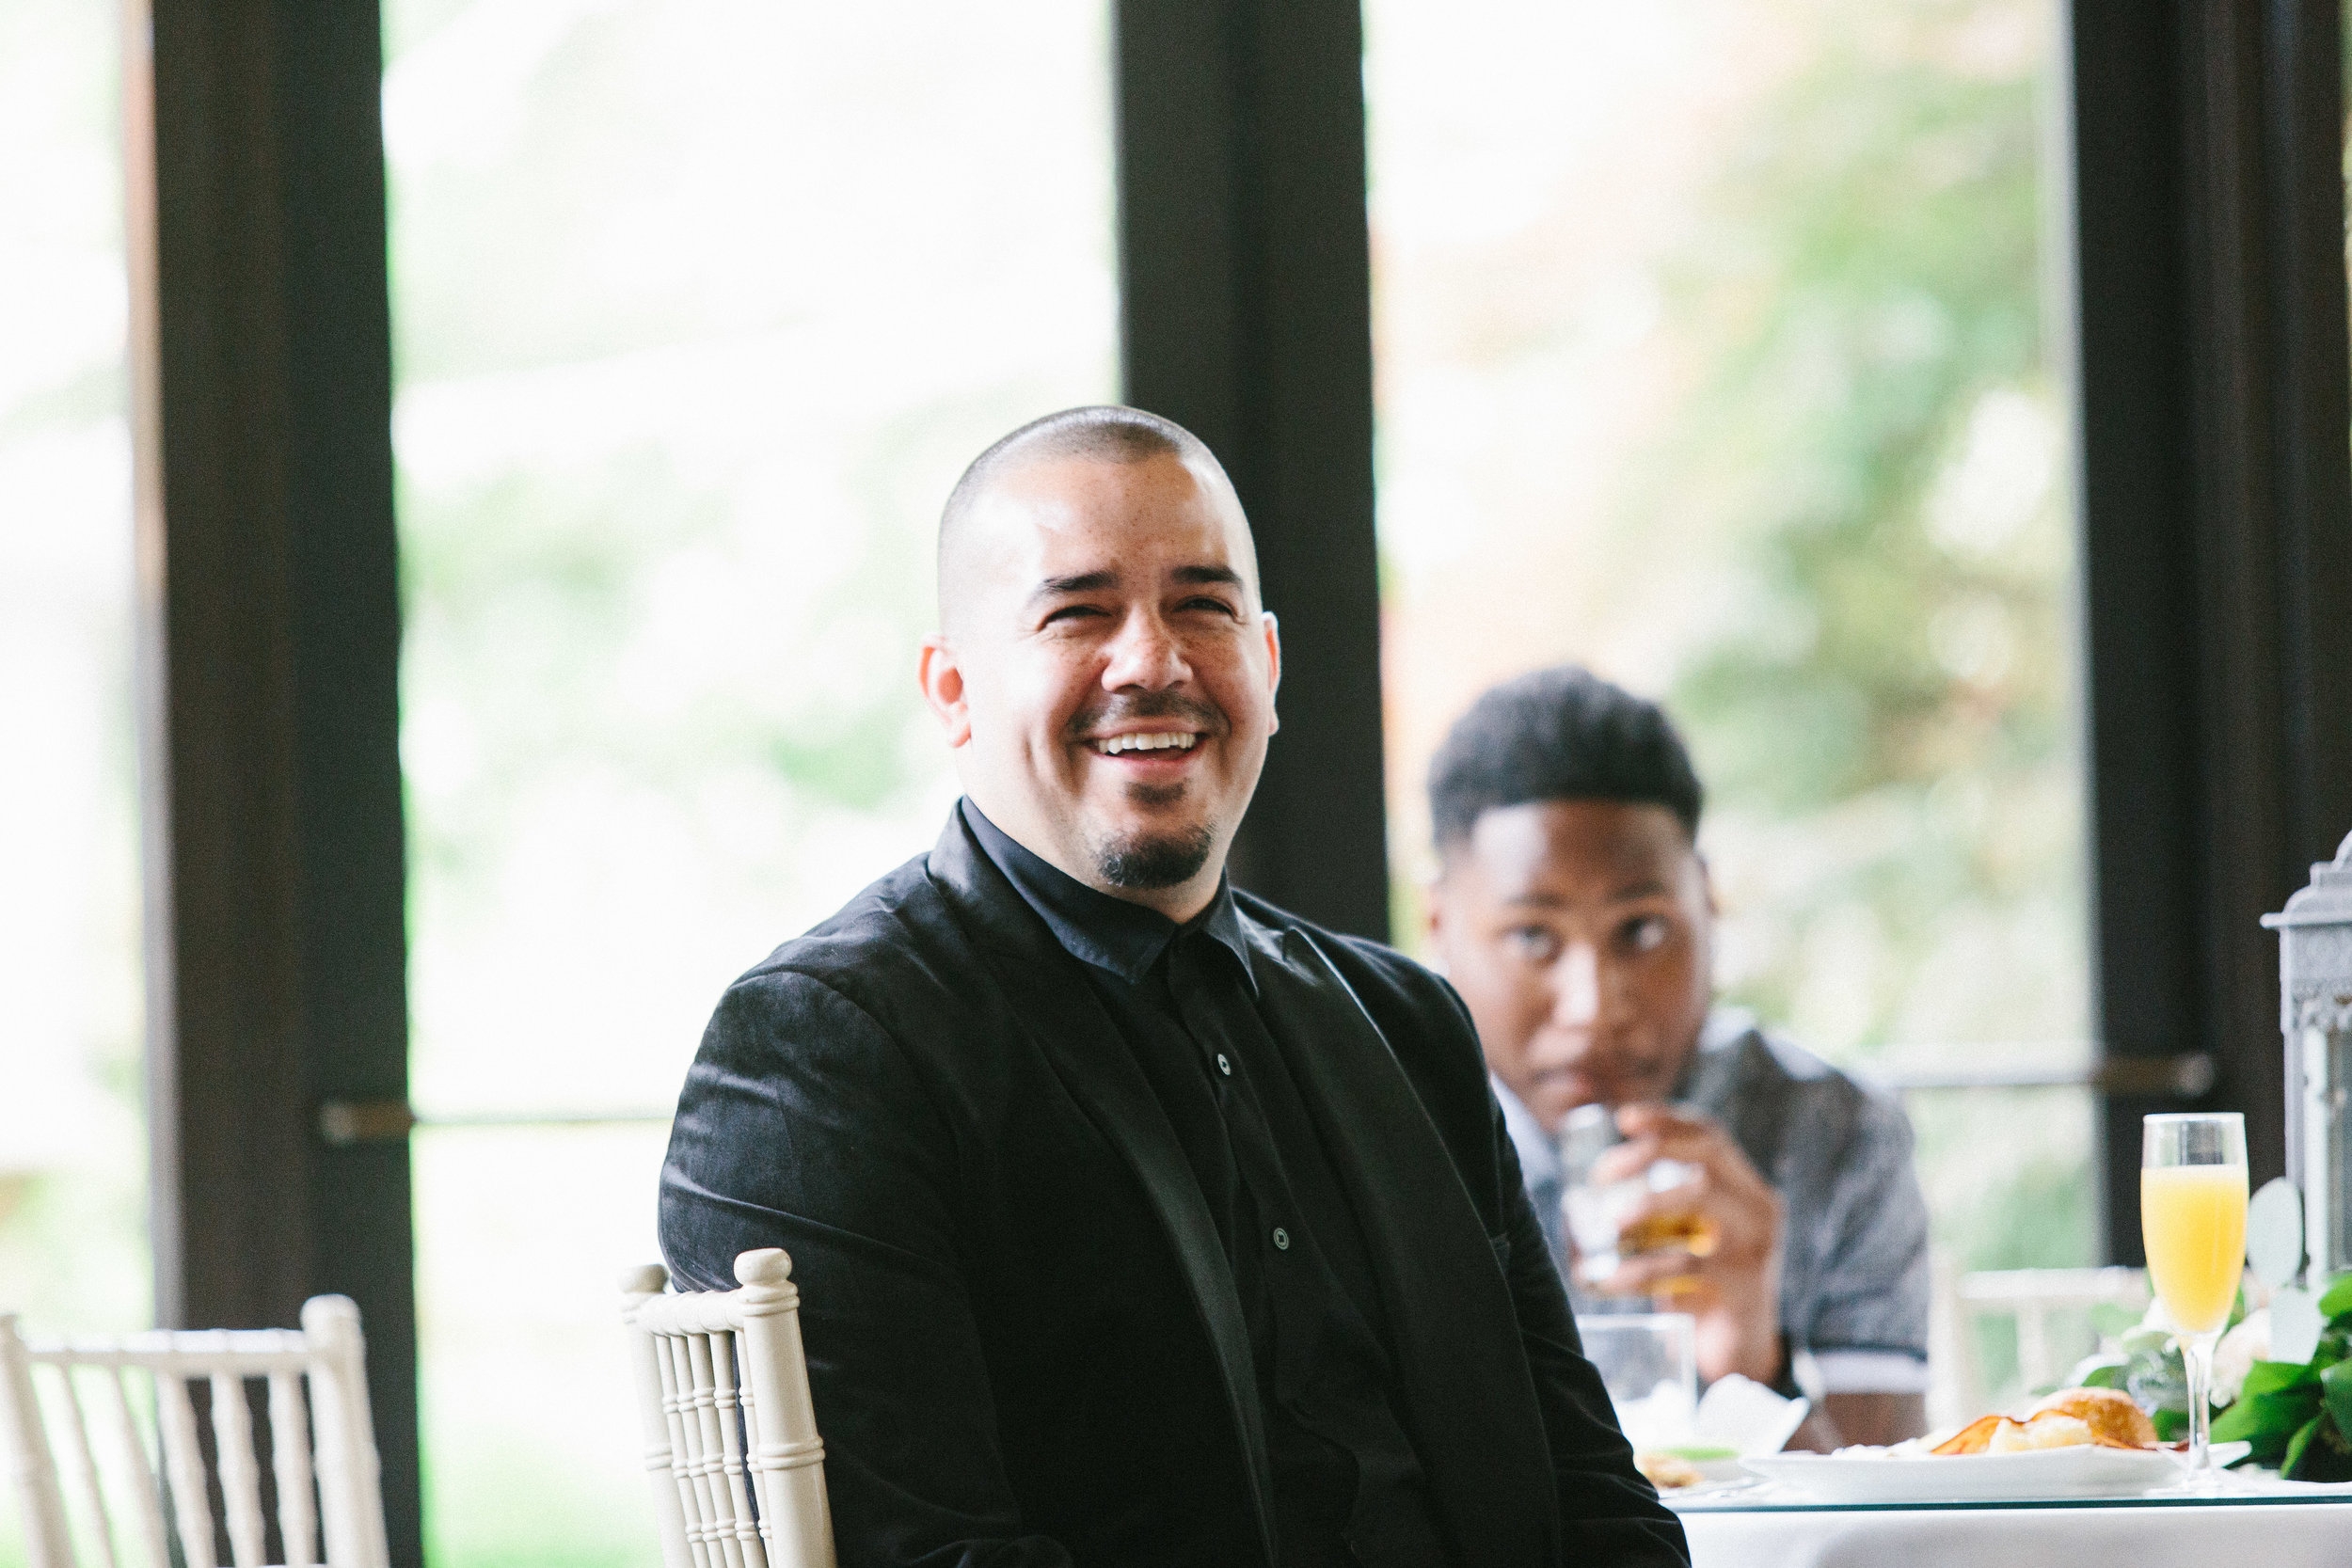 the_atrium_wedding_atlanta_norcross_lifestyle_photographers_lgbtq_1365.jpg